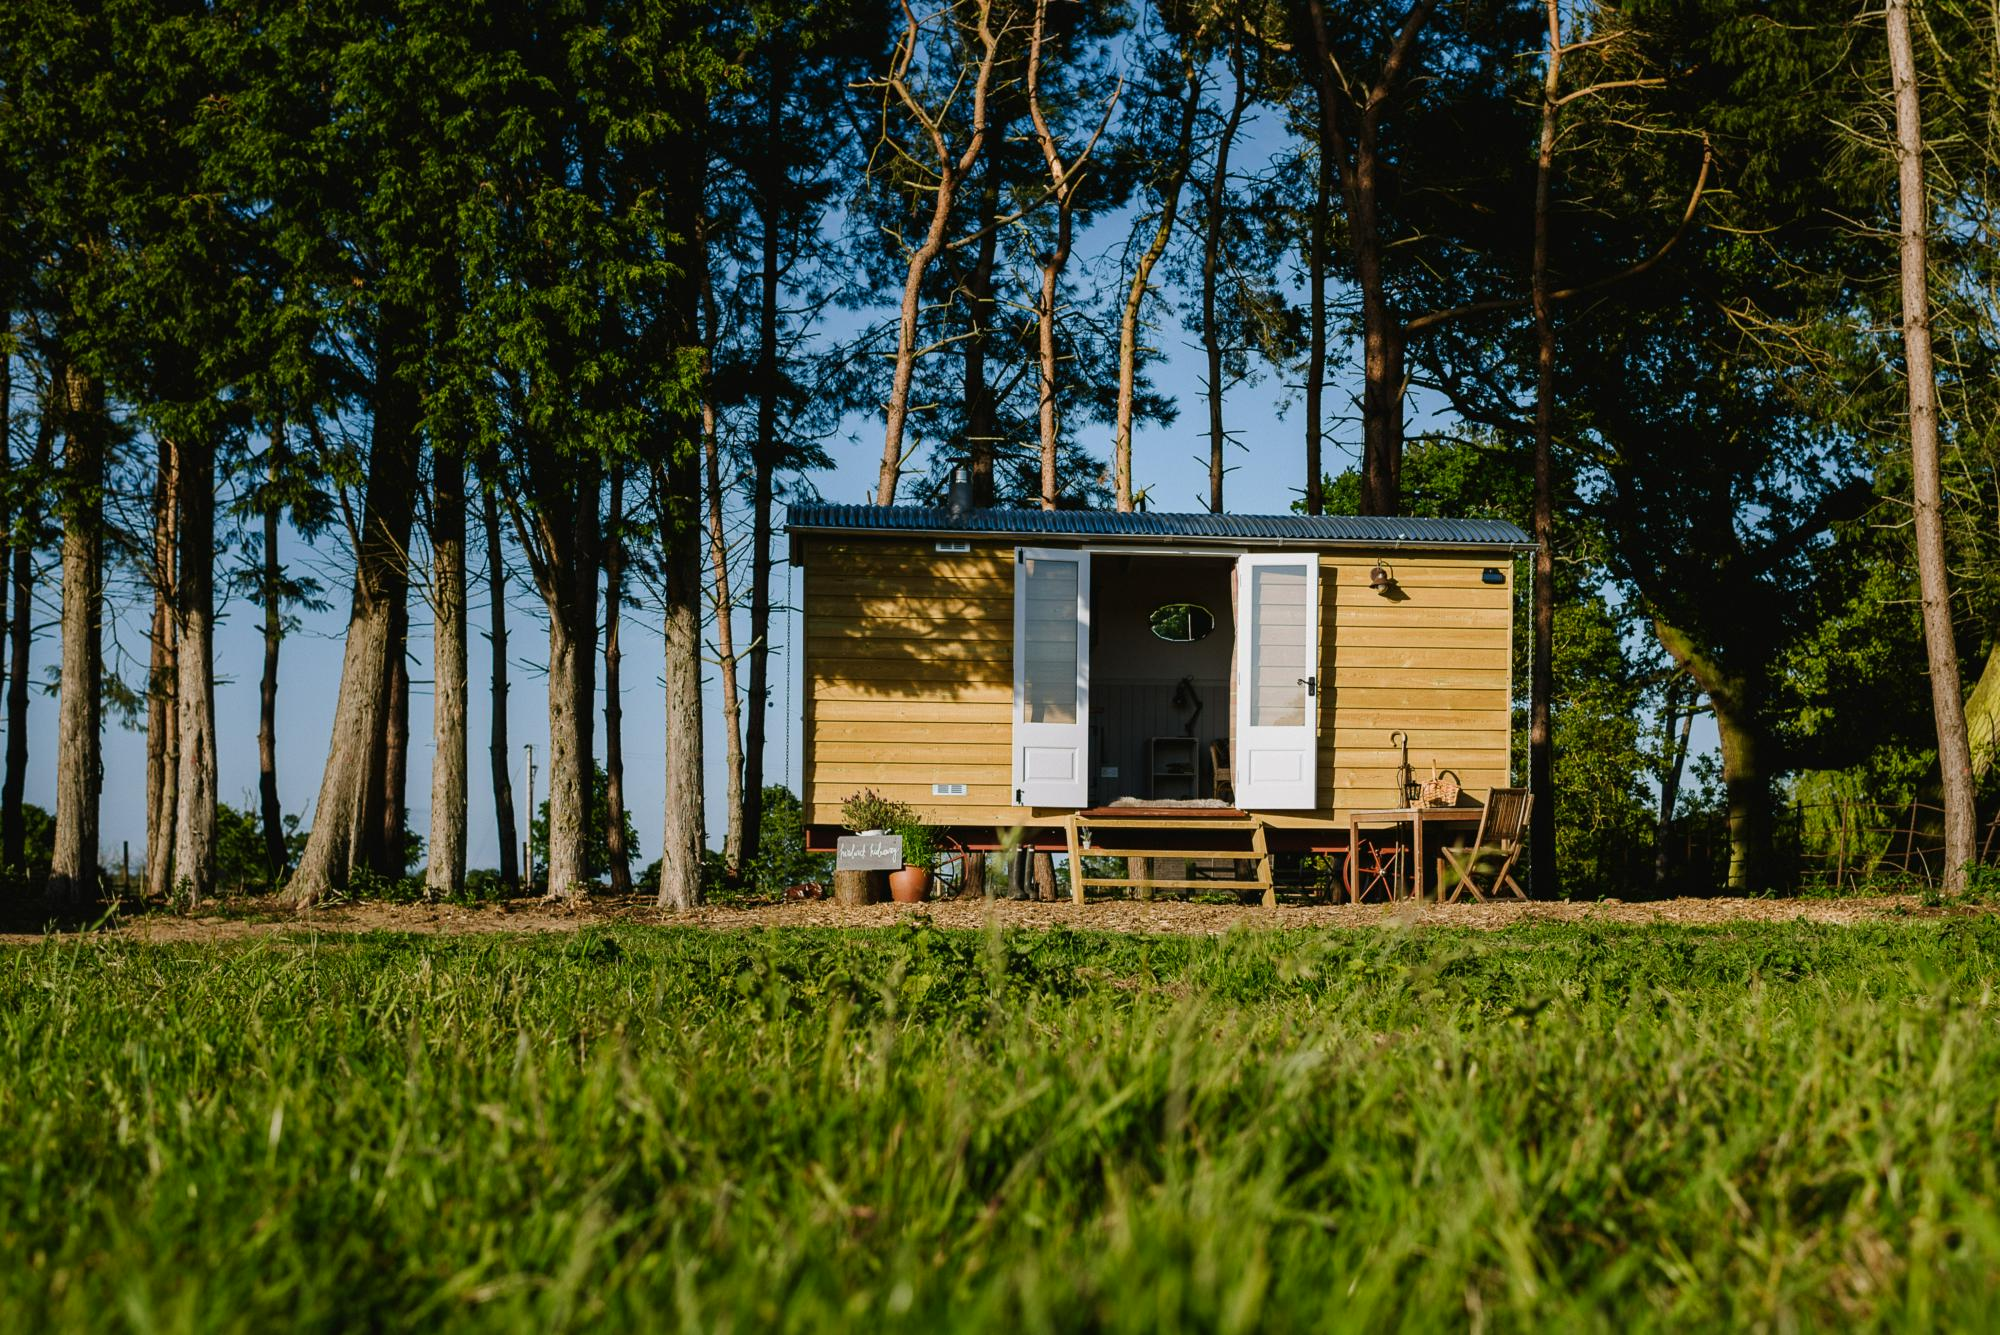 Campsites in UK holidays at Cool Places